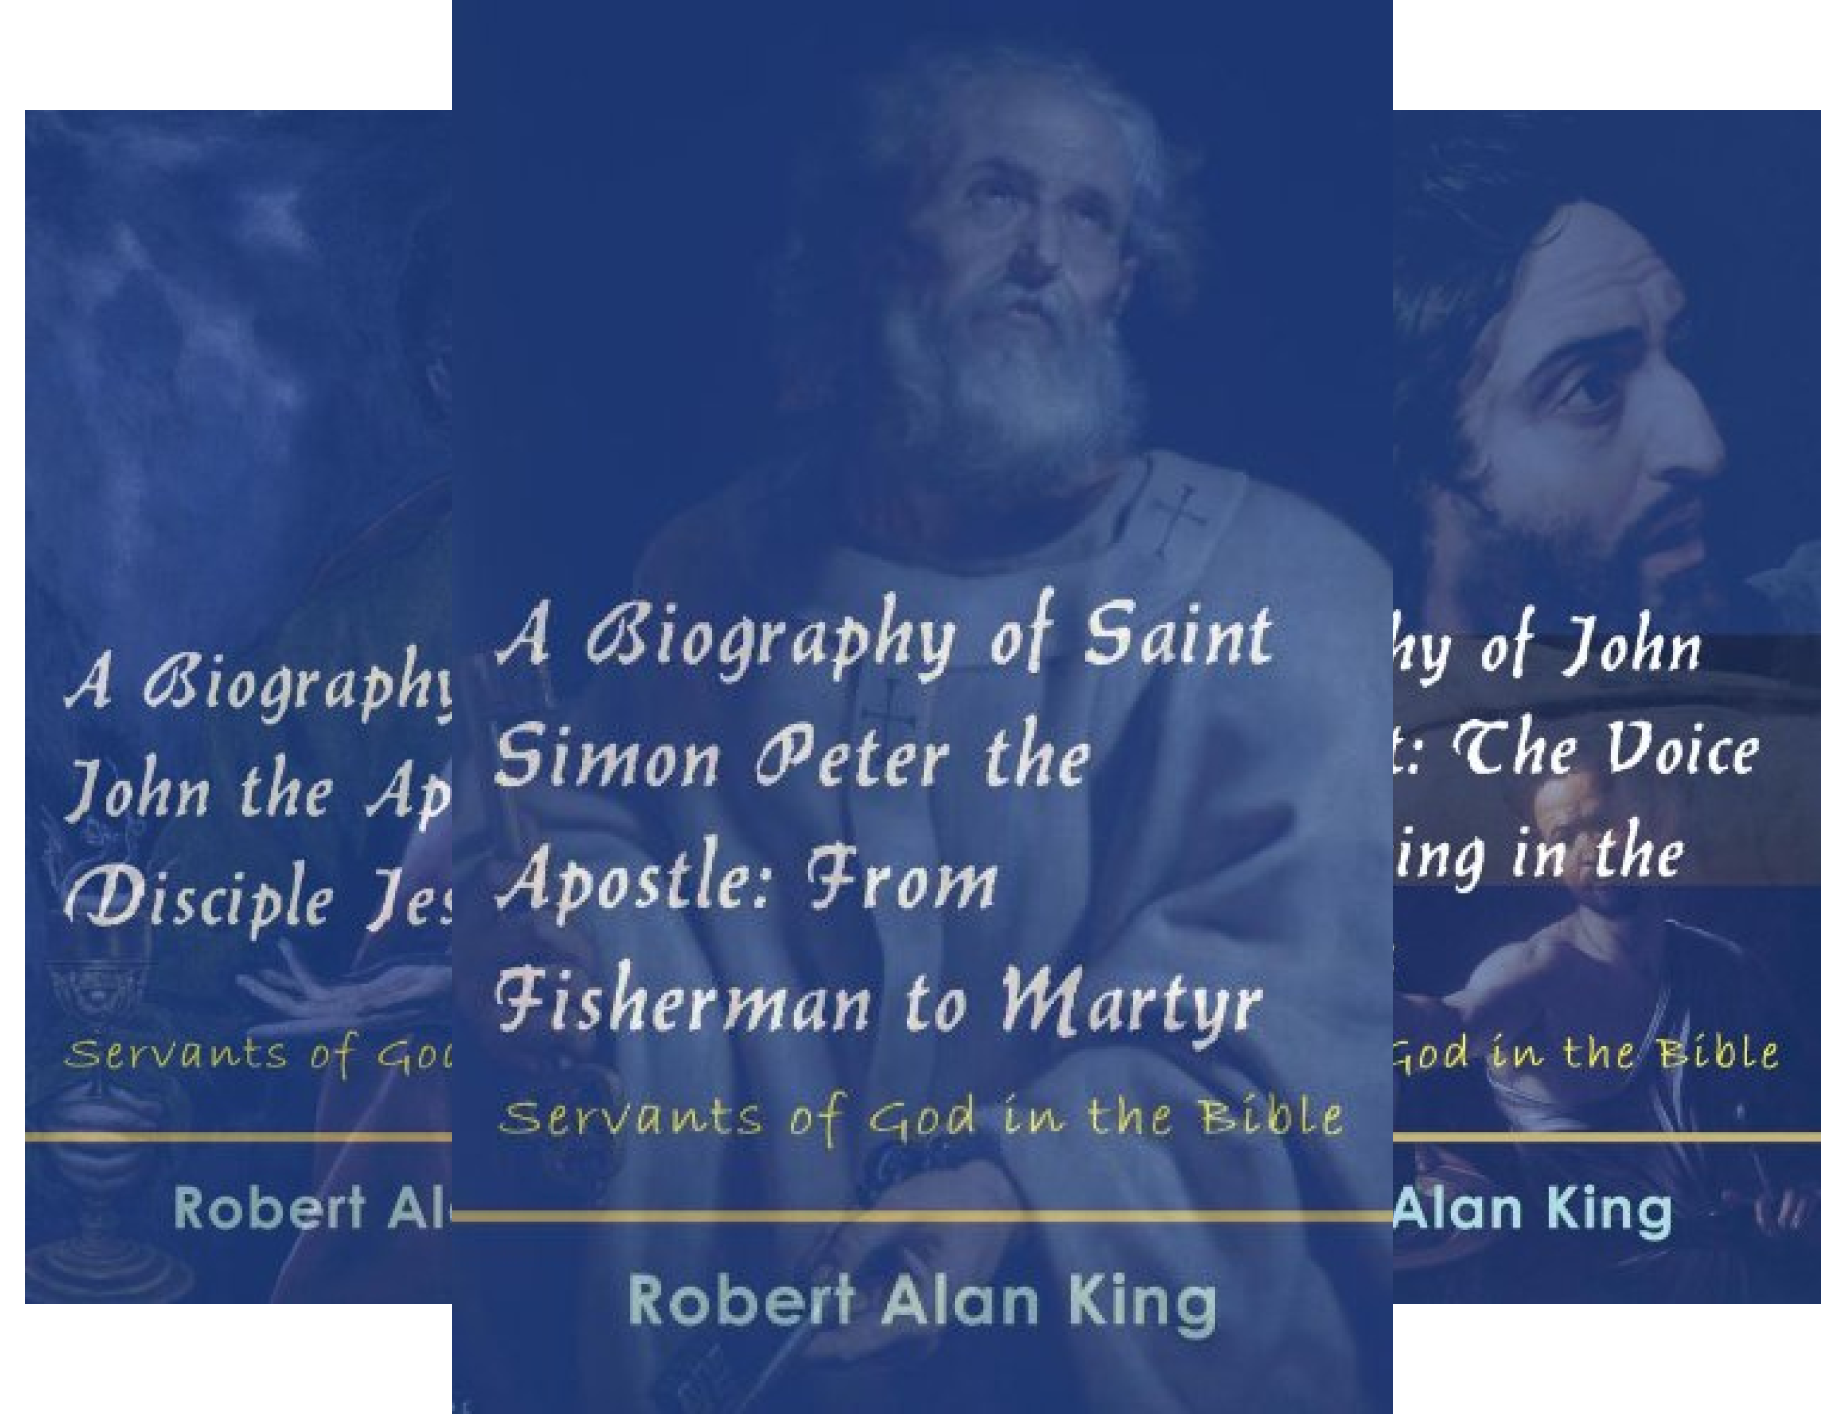 Servants of God in the Bible (4 Book Series)